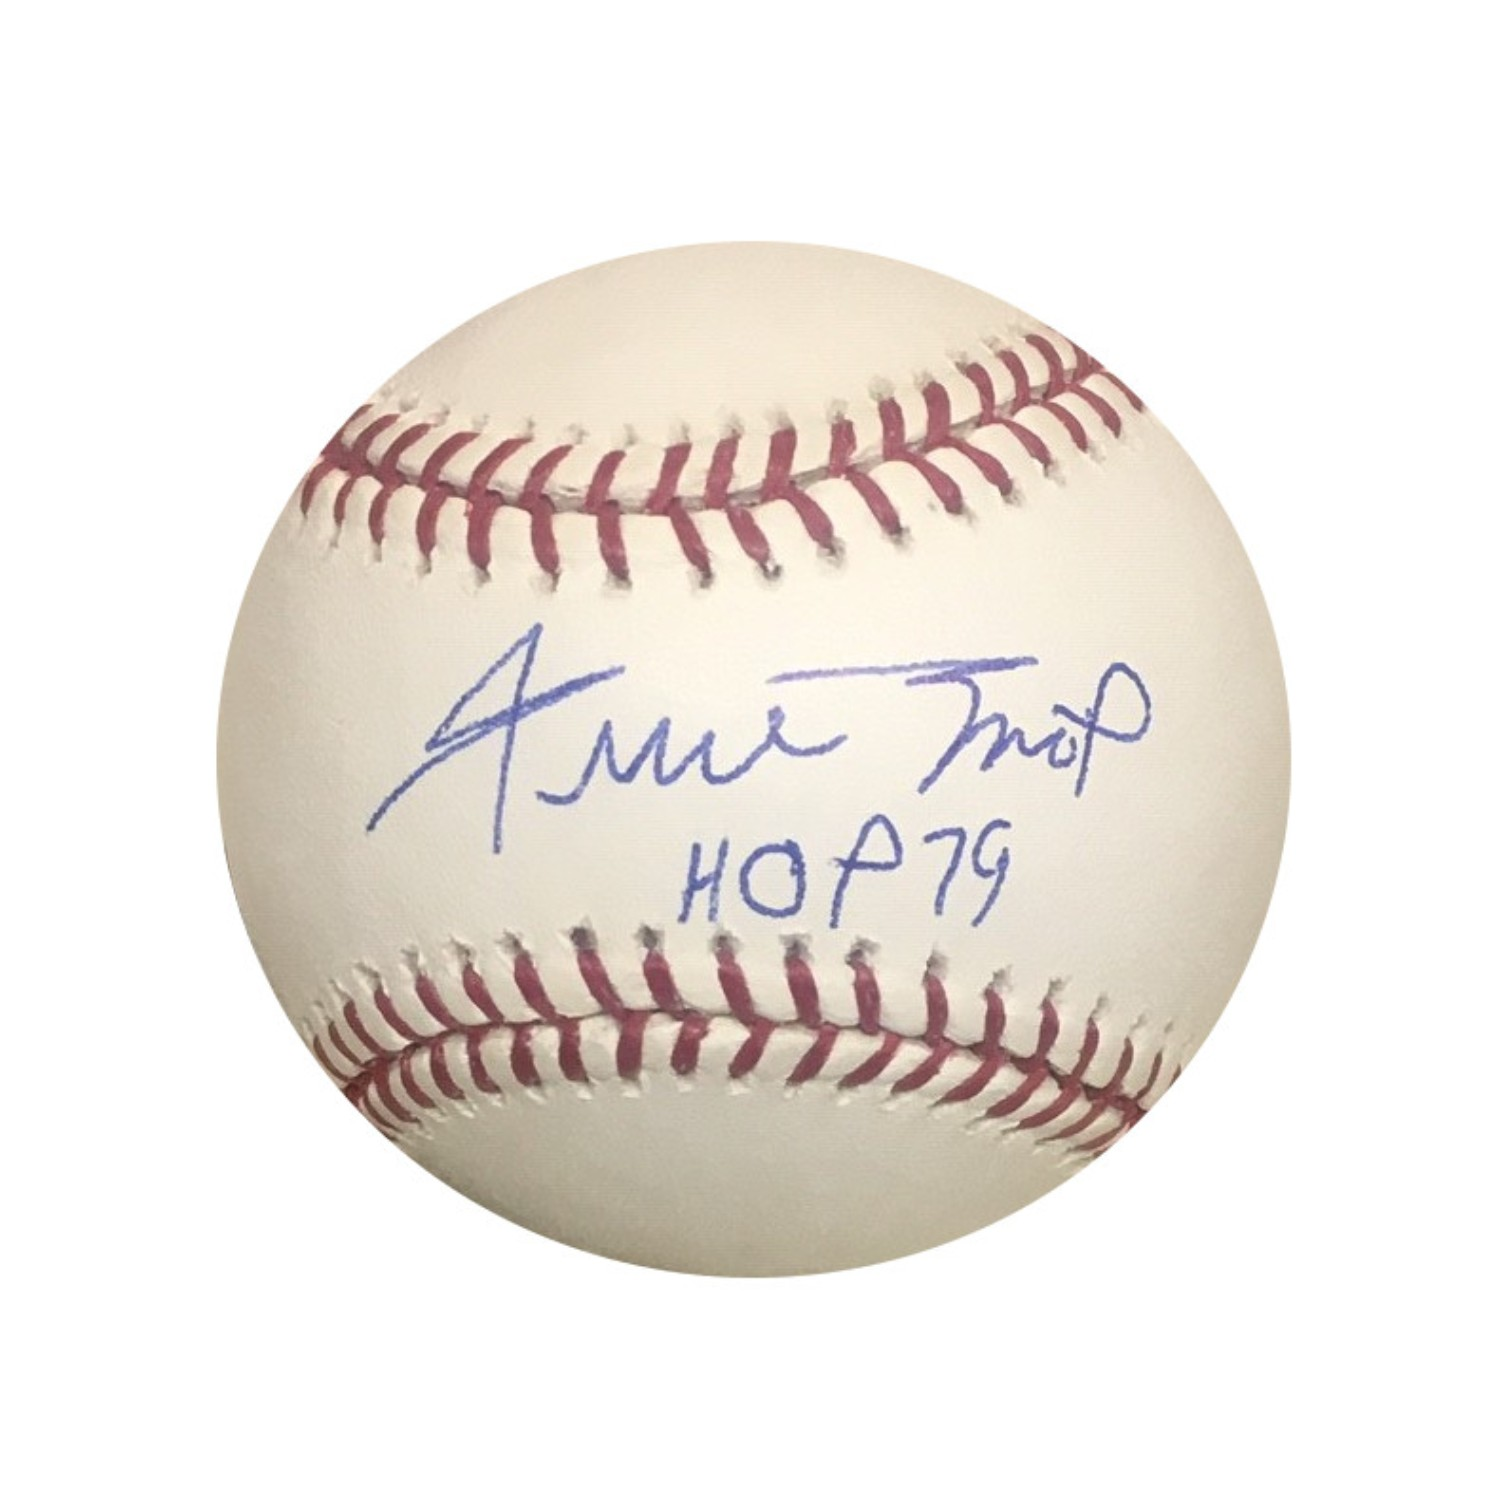 Willie Mays San Francisco Giants Autographed Hall of Fame HOF 79 Signed Baseball Beckett BAS COA